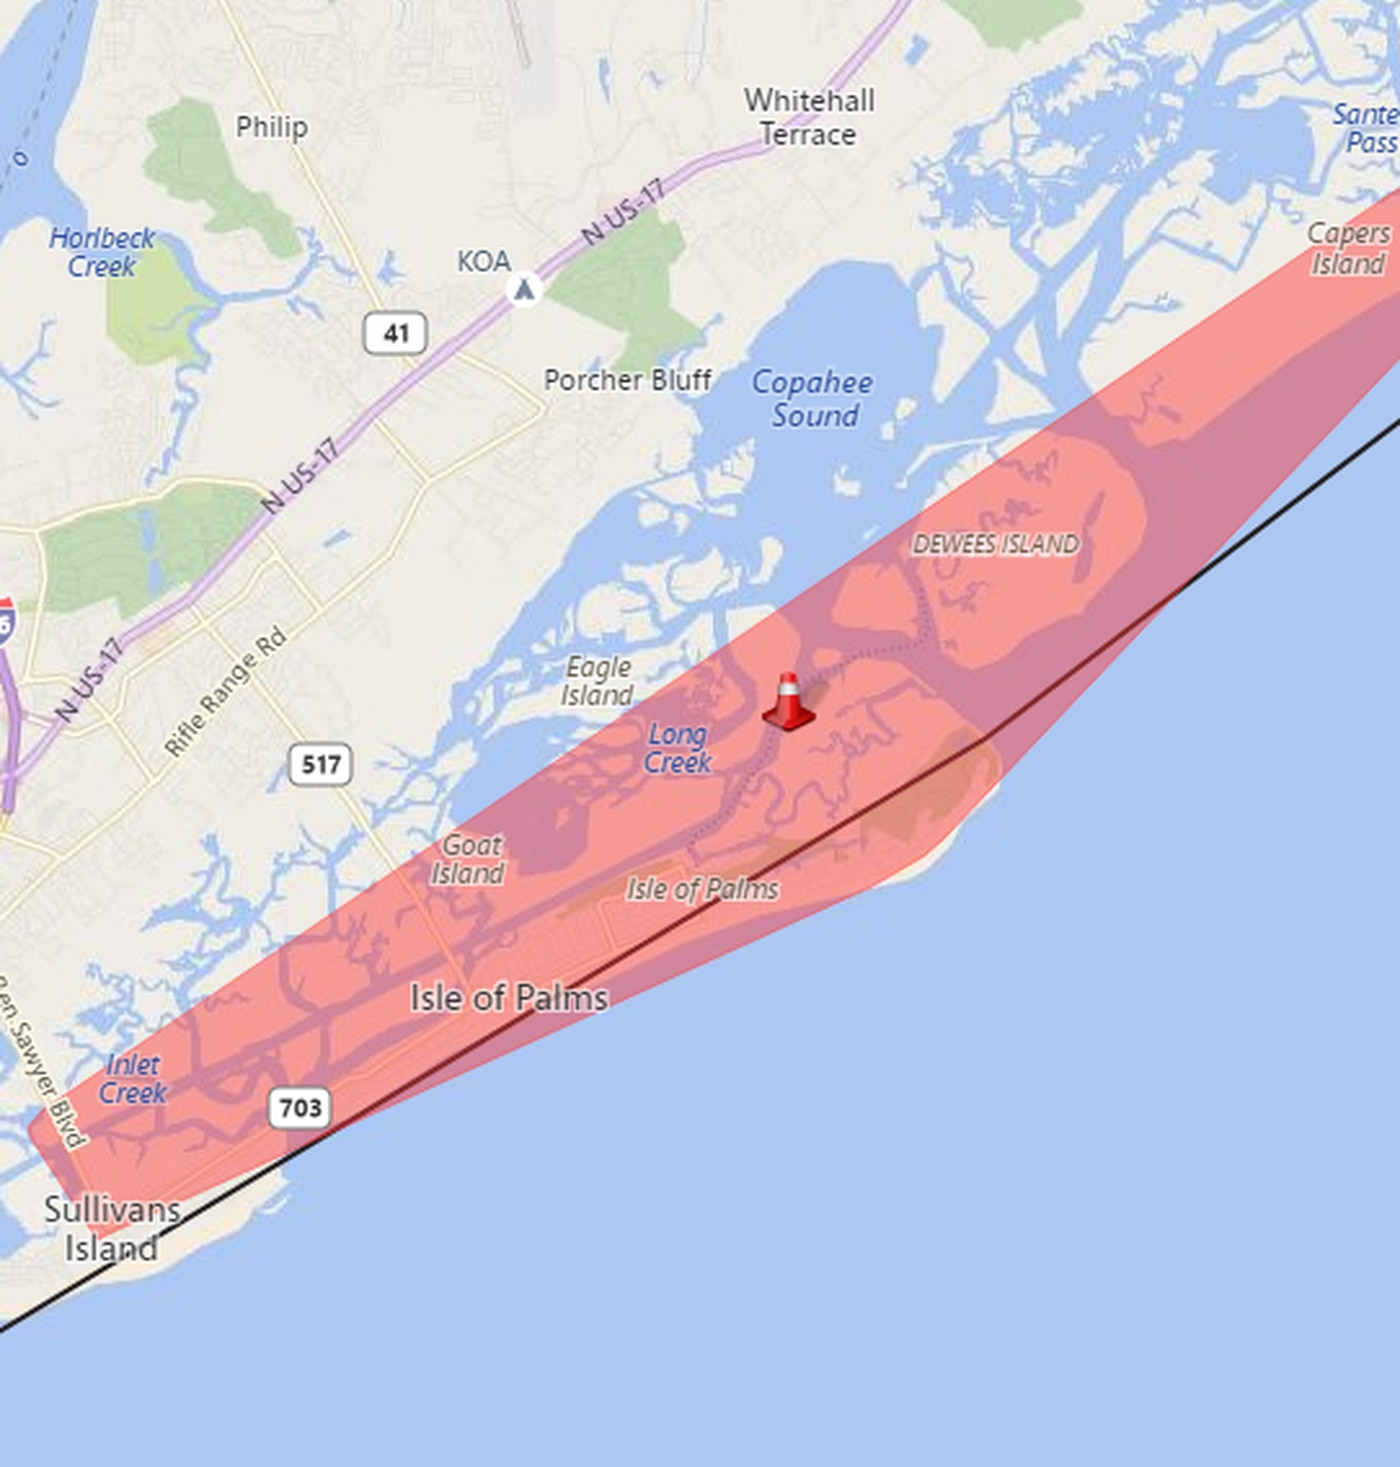 Sce&G Power Outage Map SCE&G: Equipment issue caused early morning power outage on IOP